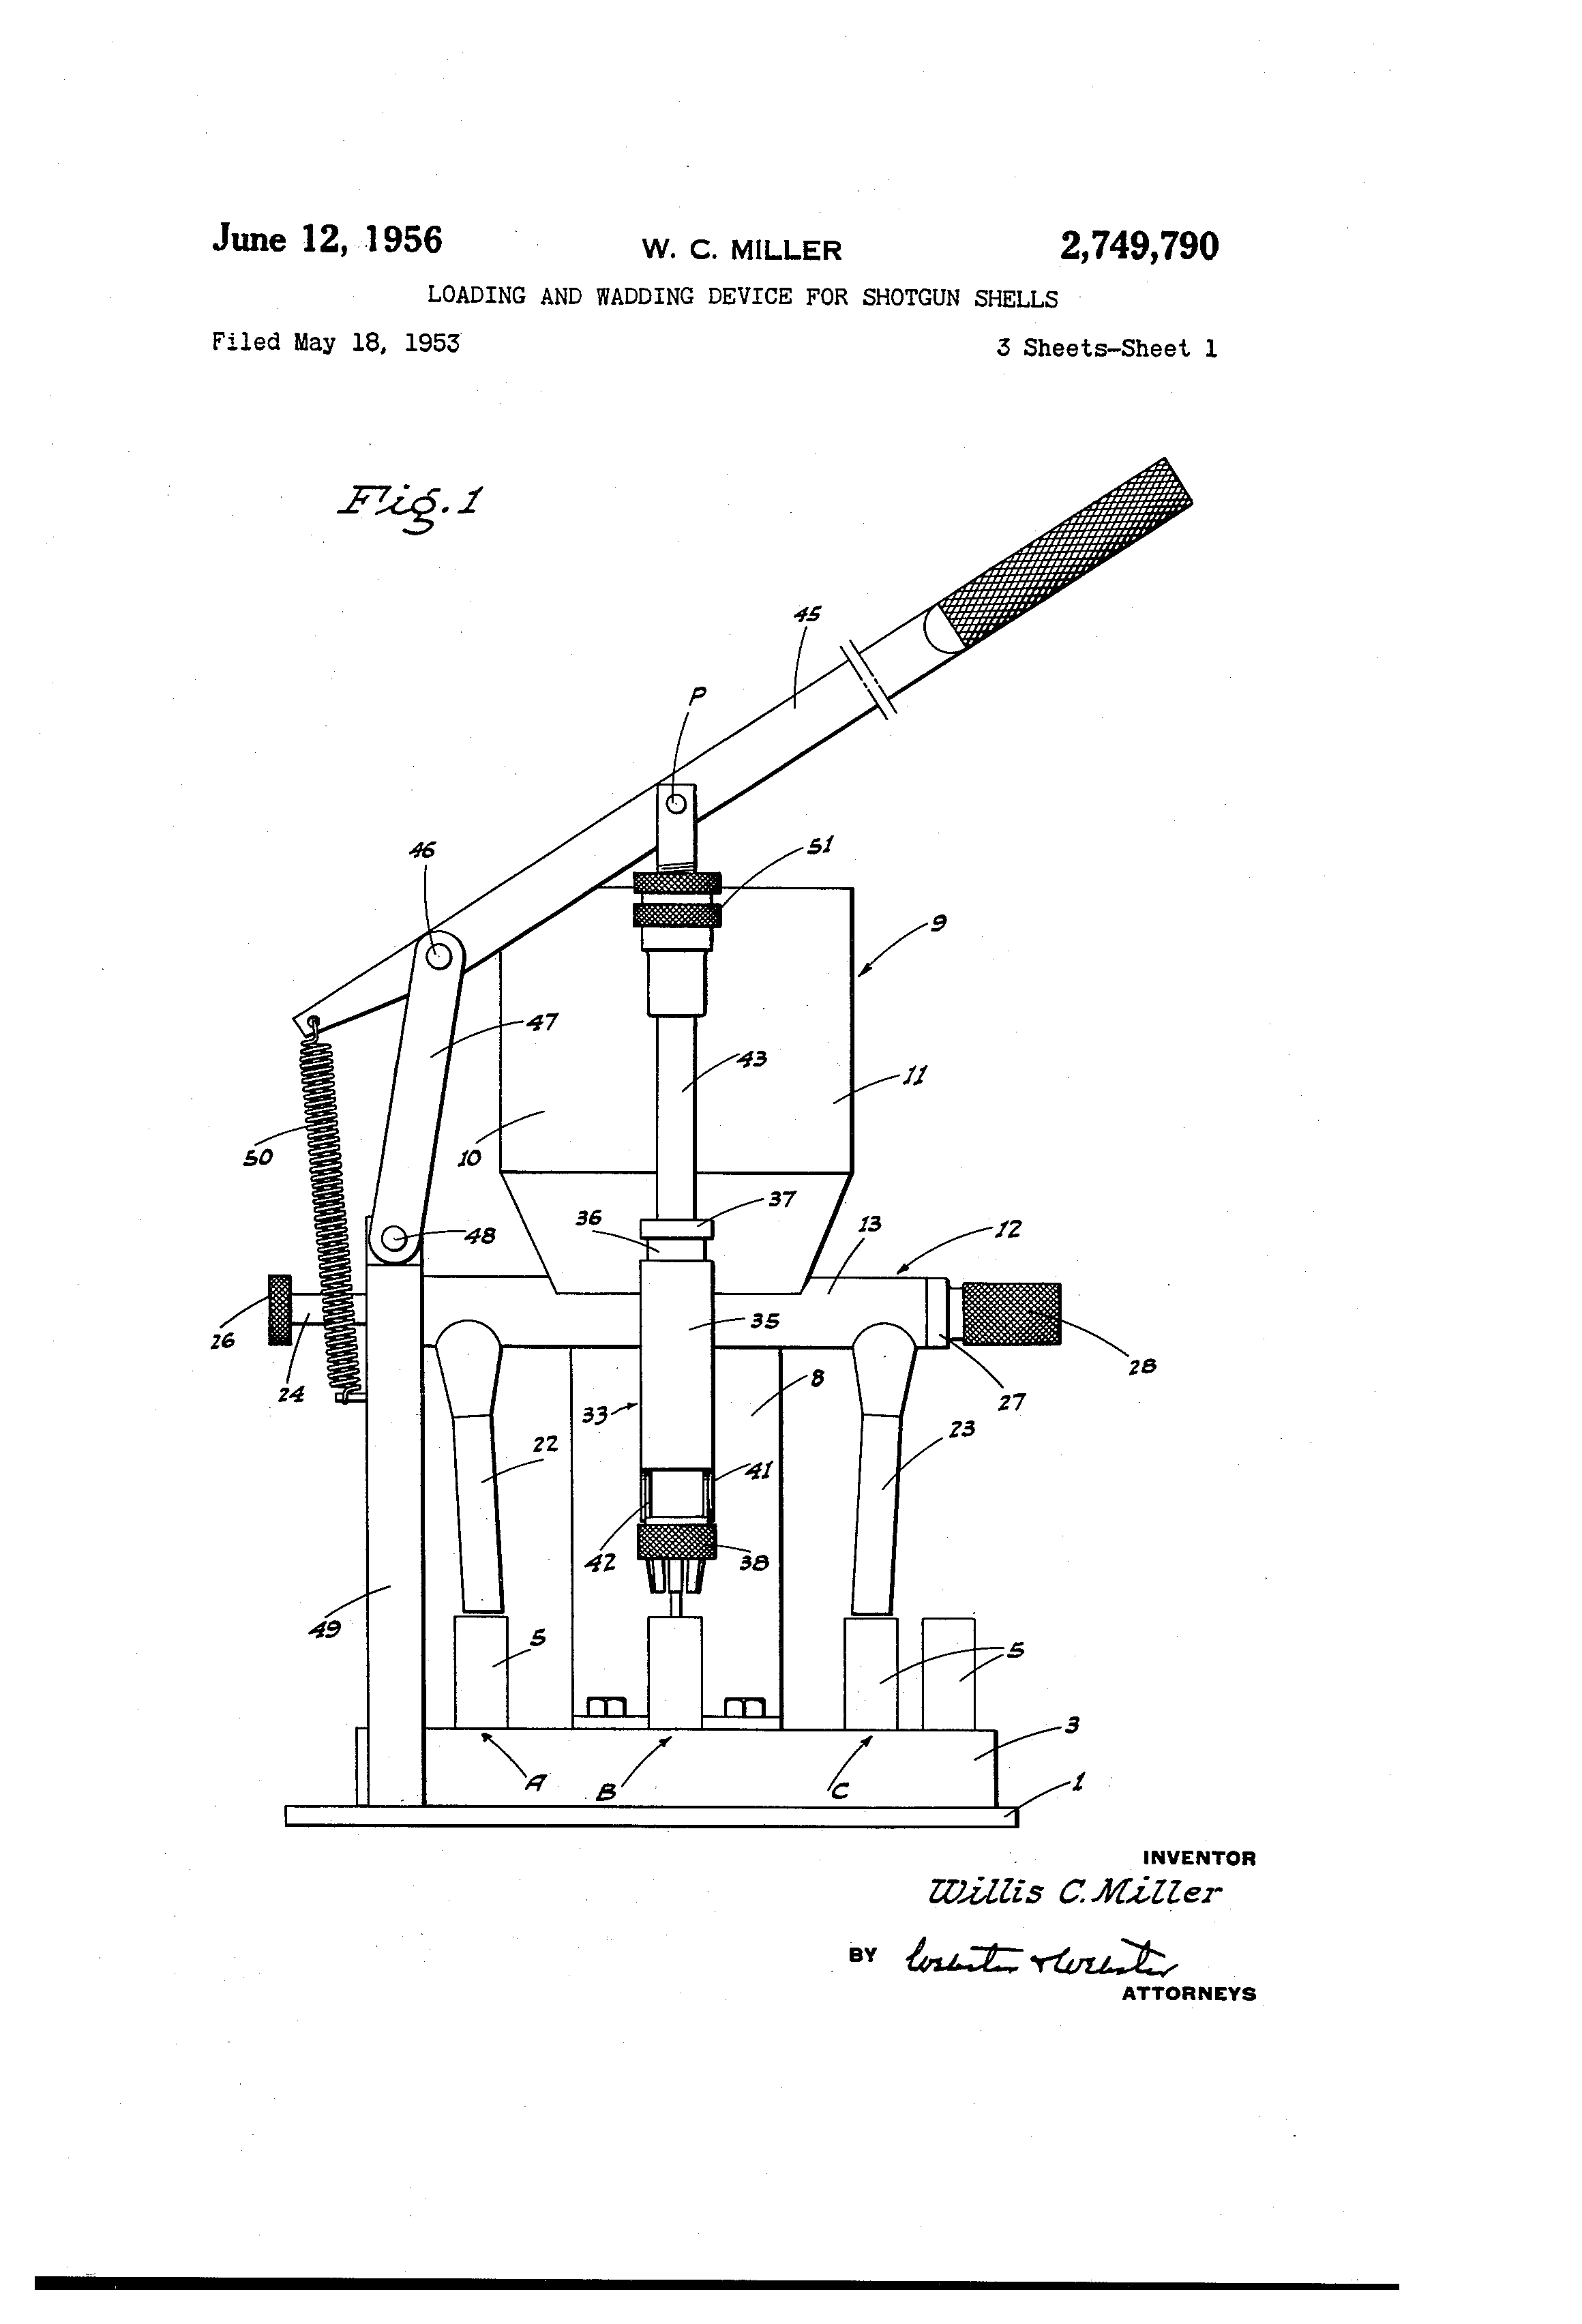 Brevet Us2749790 Loading And Wadding Device For Shotgun Shells Shell Diagram Patent Drawing